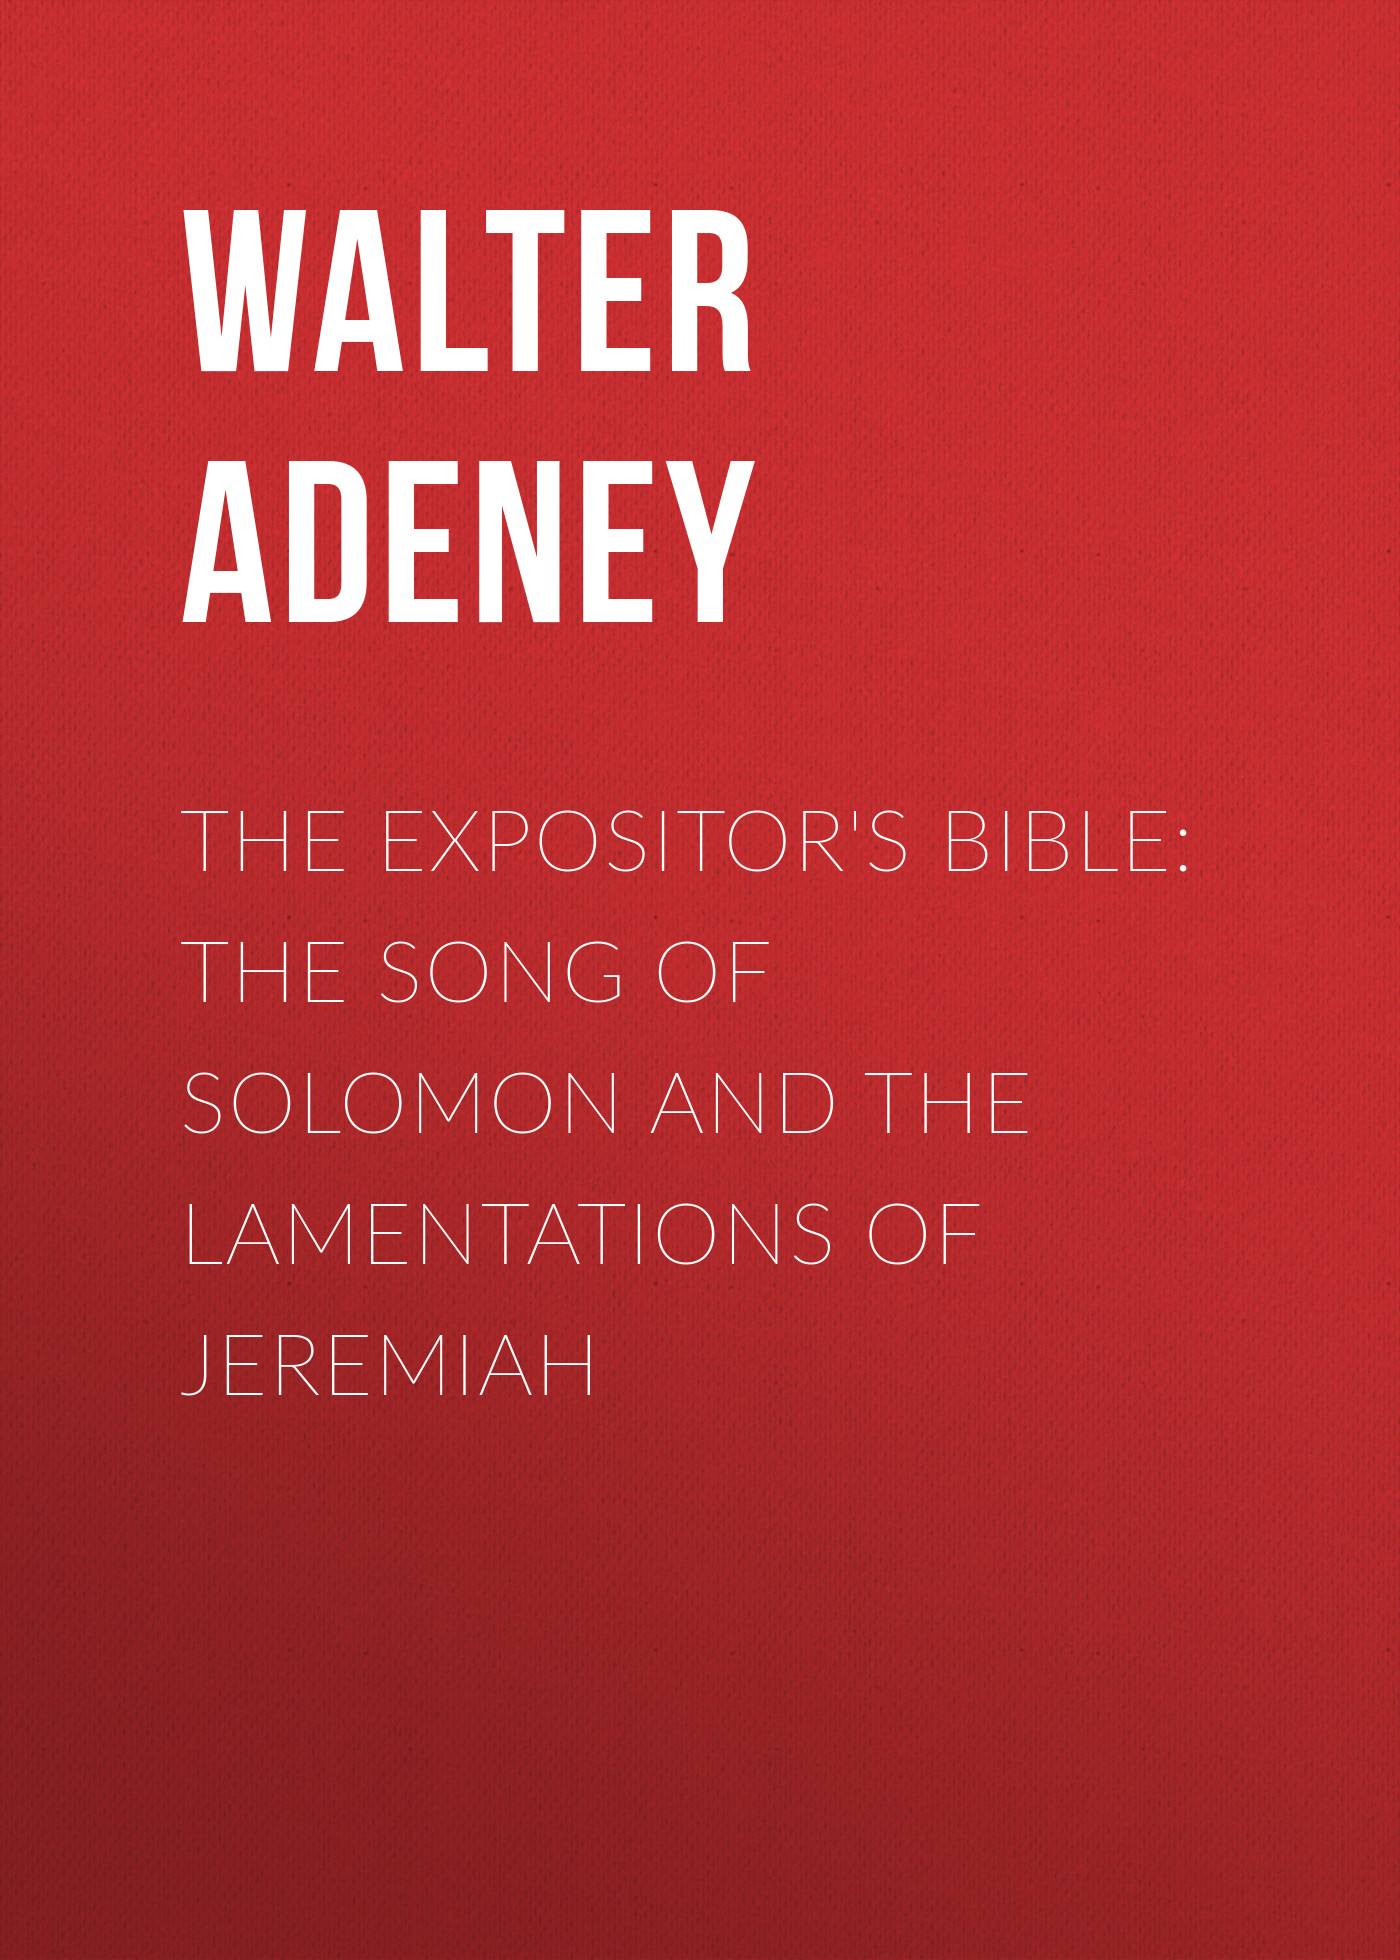 Adeney Walter Frederic The Expositor's Bible: The Song of Solomon and the Lamentations of Jeremiah ivan secret the randy rabbit of israel the real meaning of the song of solomon